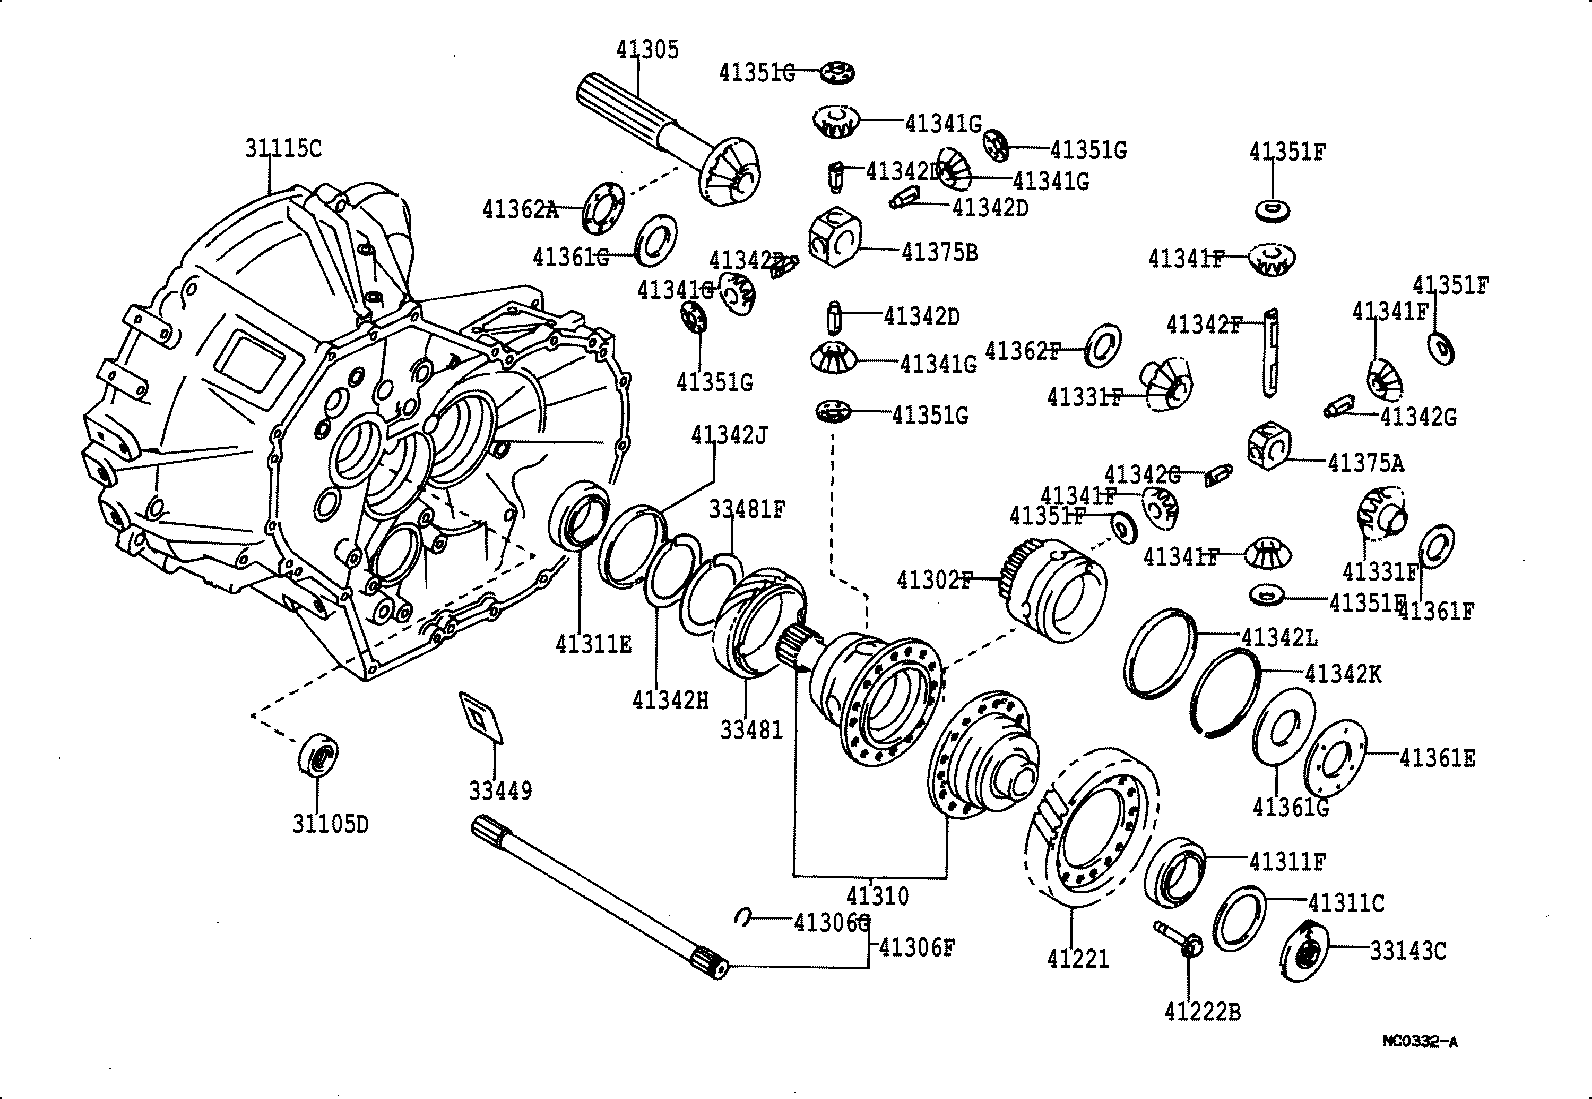 2000 Toyota 4runner Front Axle Vacuum Diagram Schematic Diagrams Differential Trusted Wiring Saab 9 3 1996